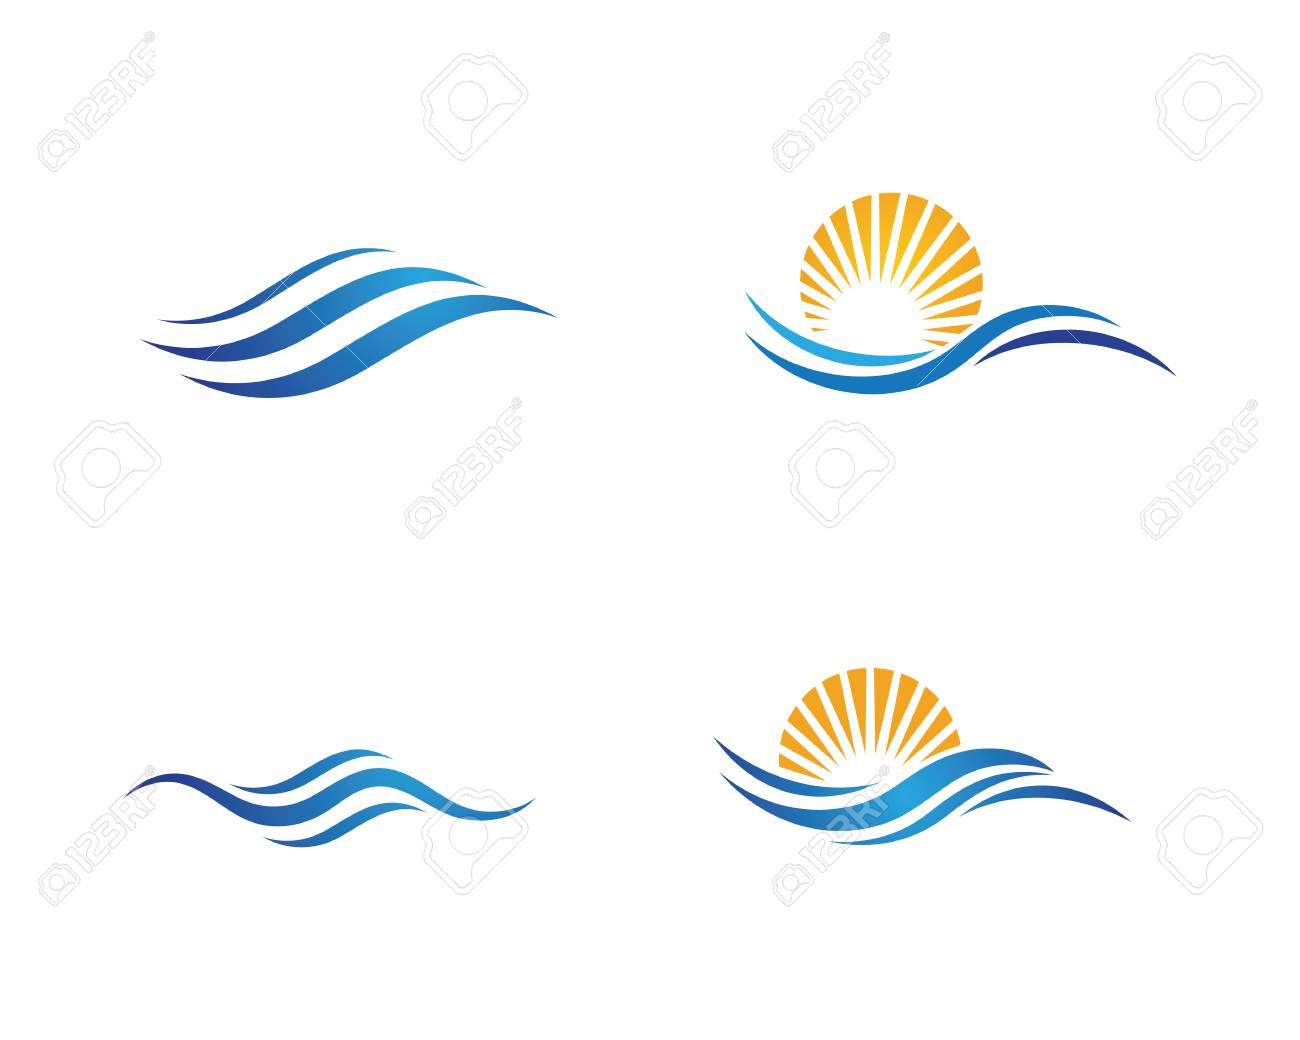 Water wave icon vector illustration design logo template - 101256324